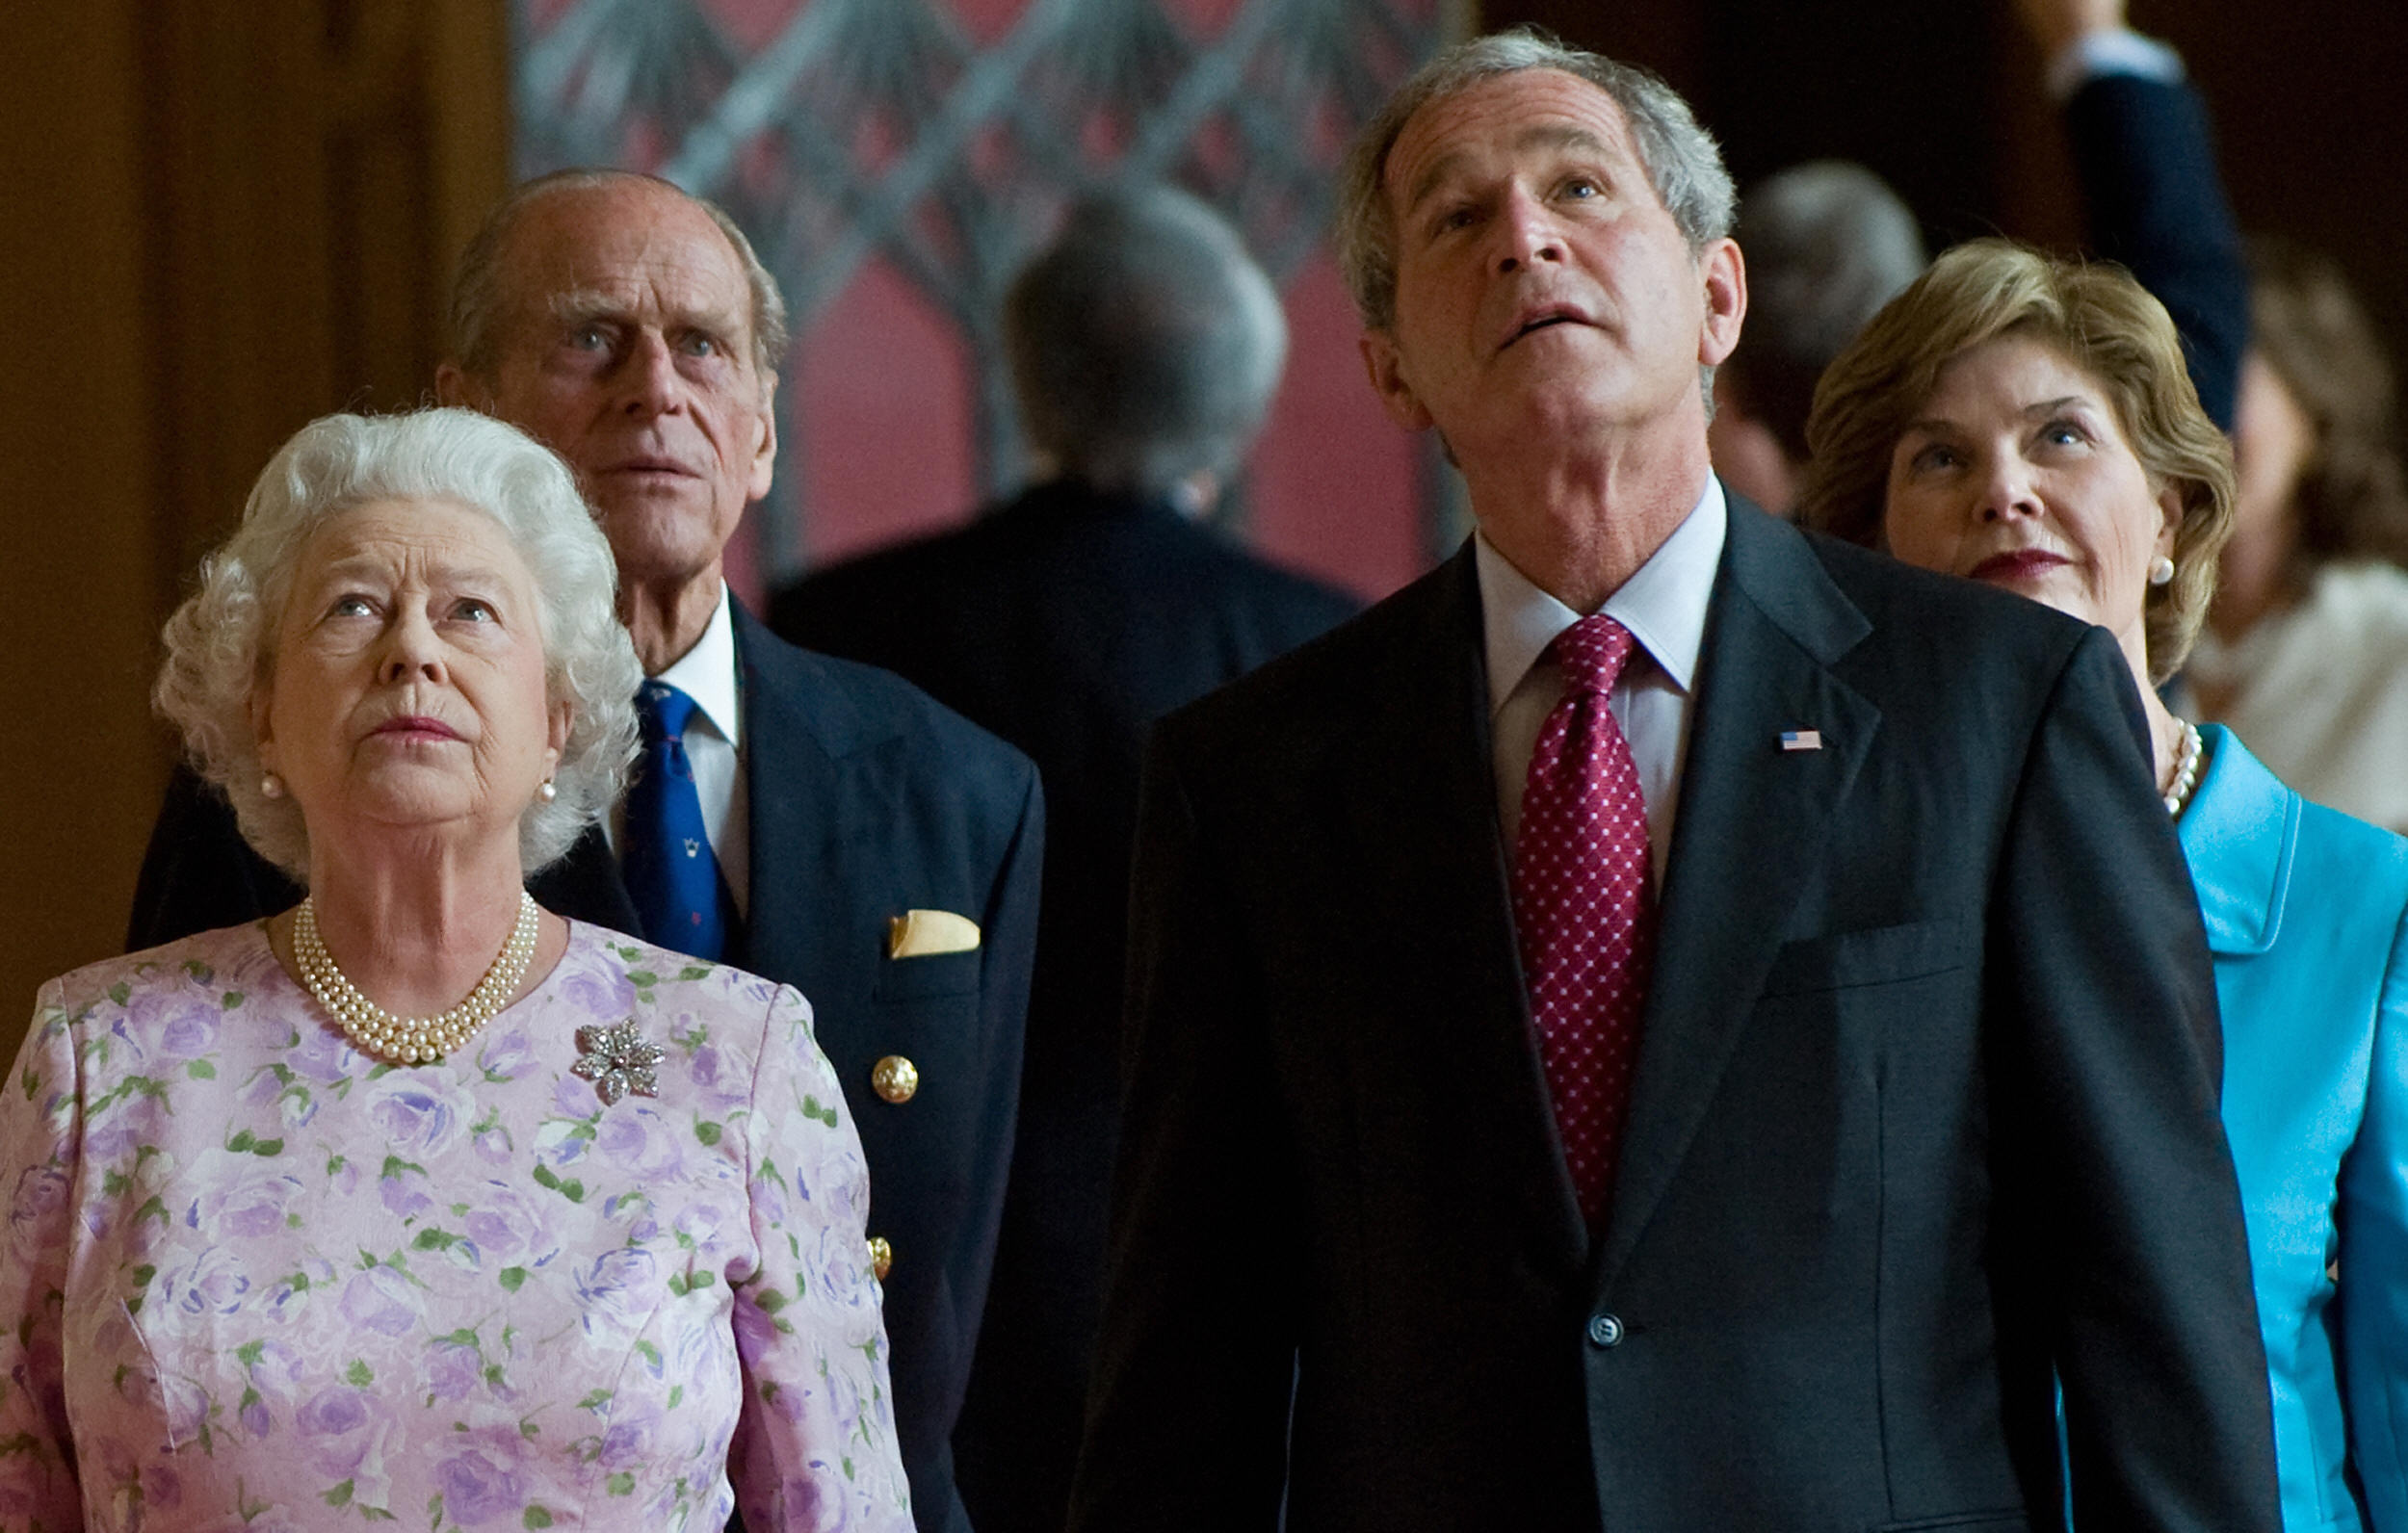 Britain's Queen Elizabeth II (L) and Prince Philip, Duke of Edinburgh give a tour of St George's Hall at Windsor Castle.